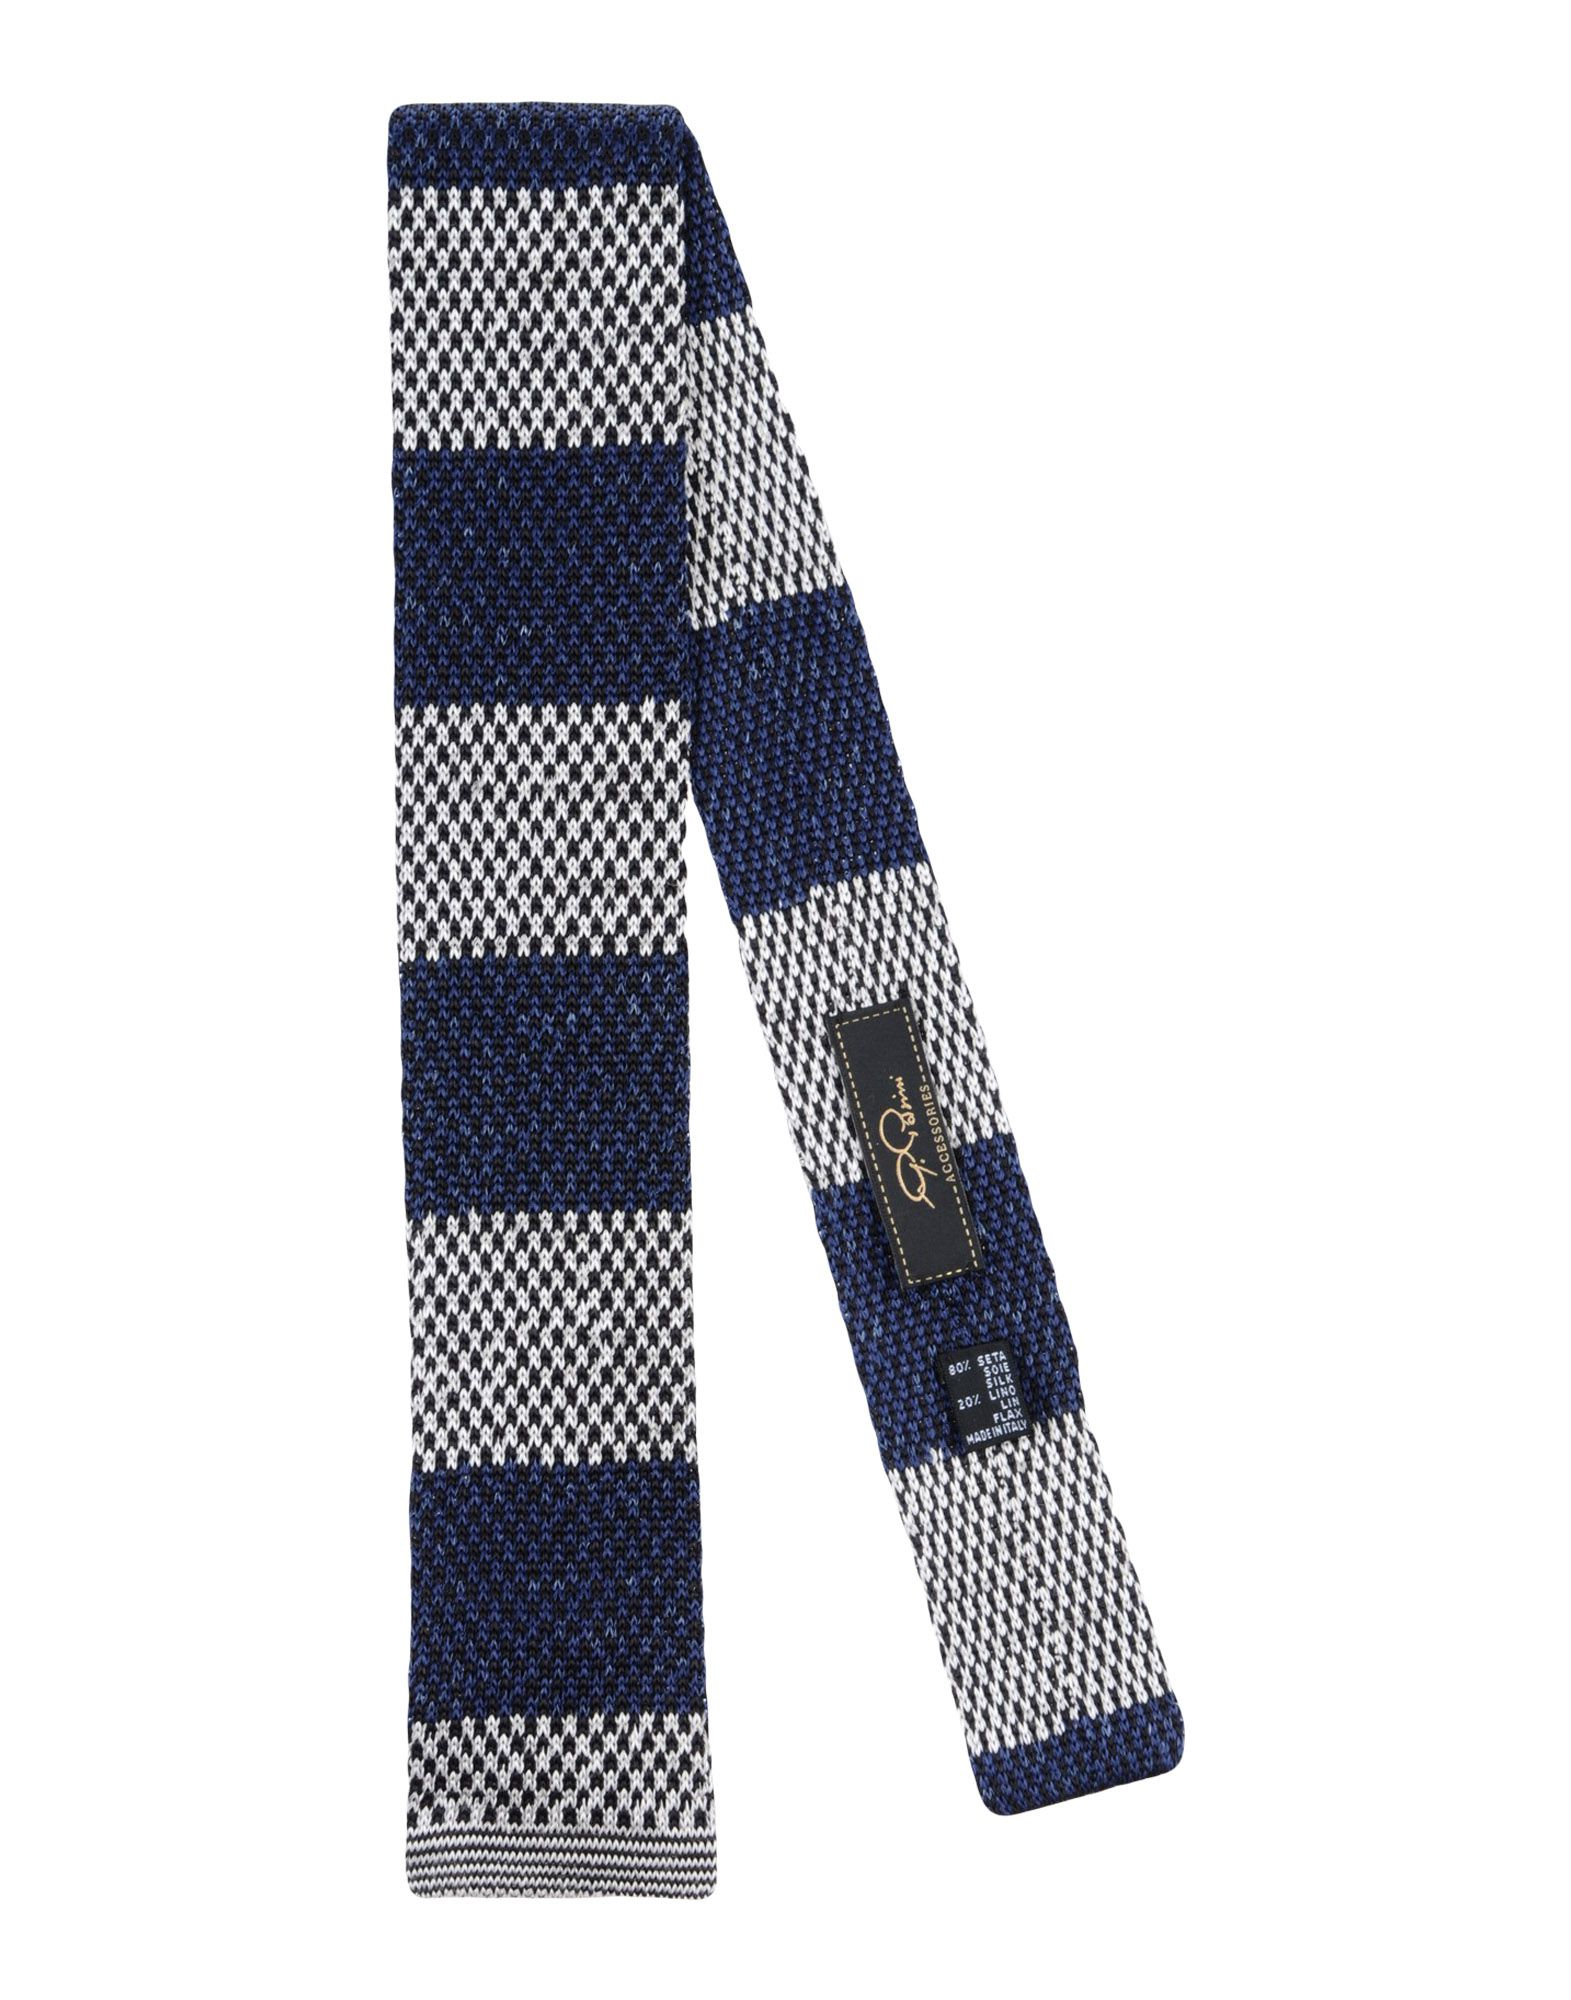 Ties in Dark Blue